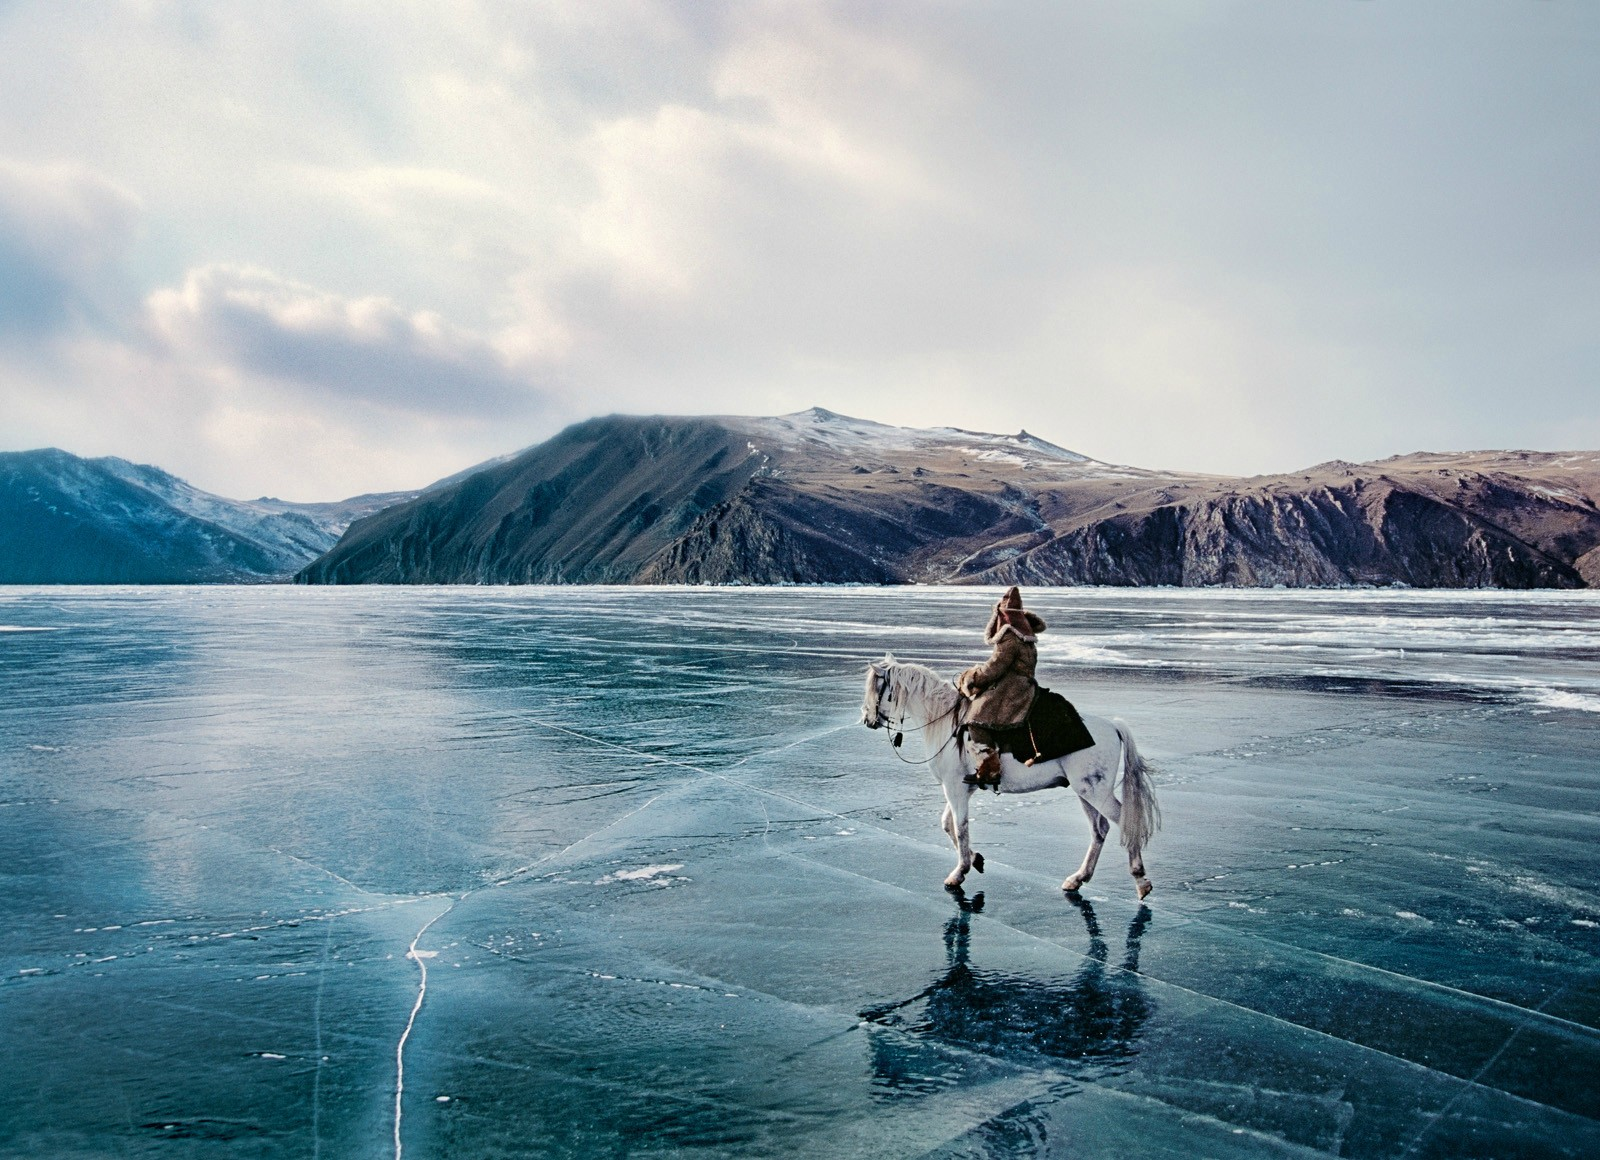 Amazing Photos of Lake Baikal in Russia